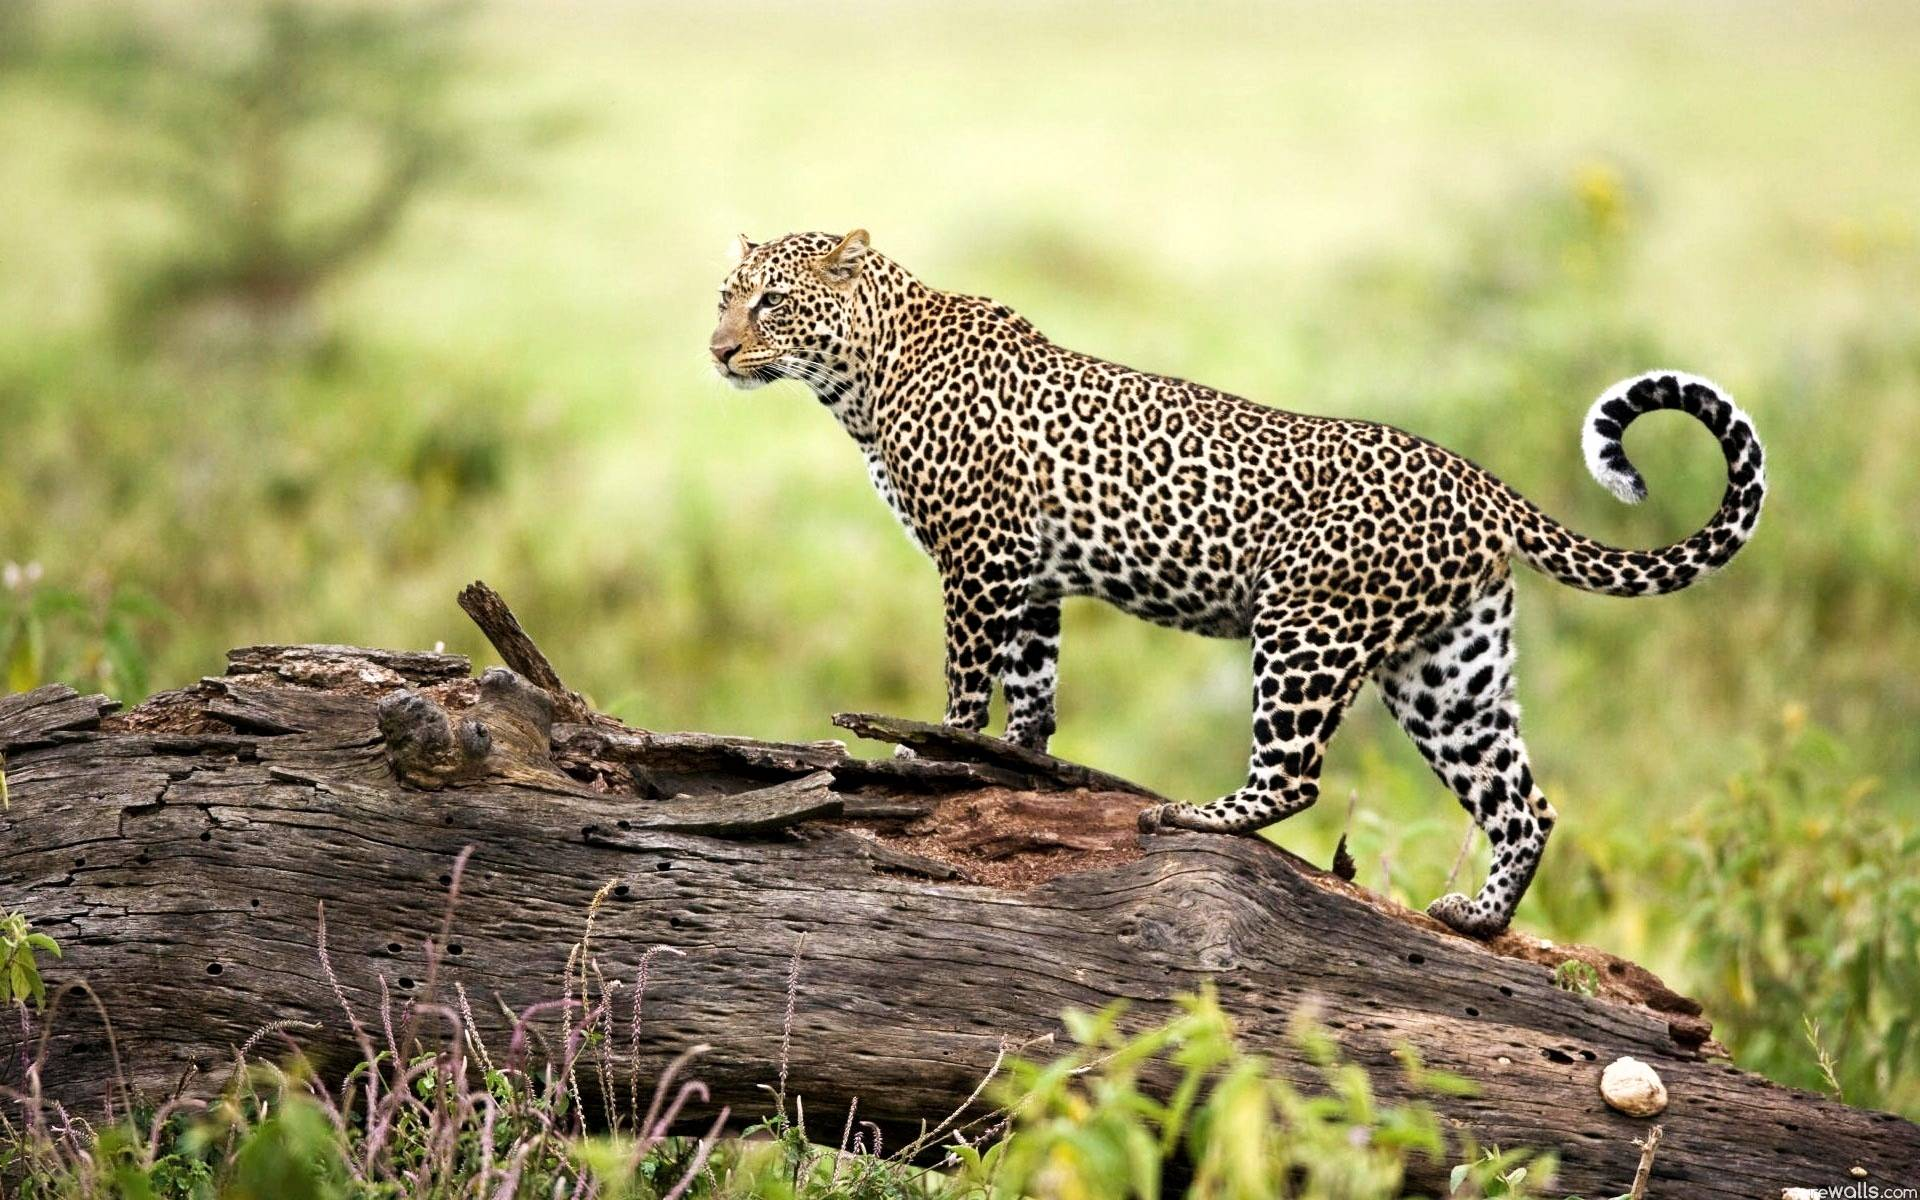 leopard standing over the wood - things to do in Nepal